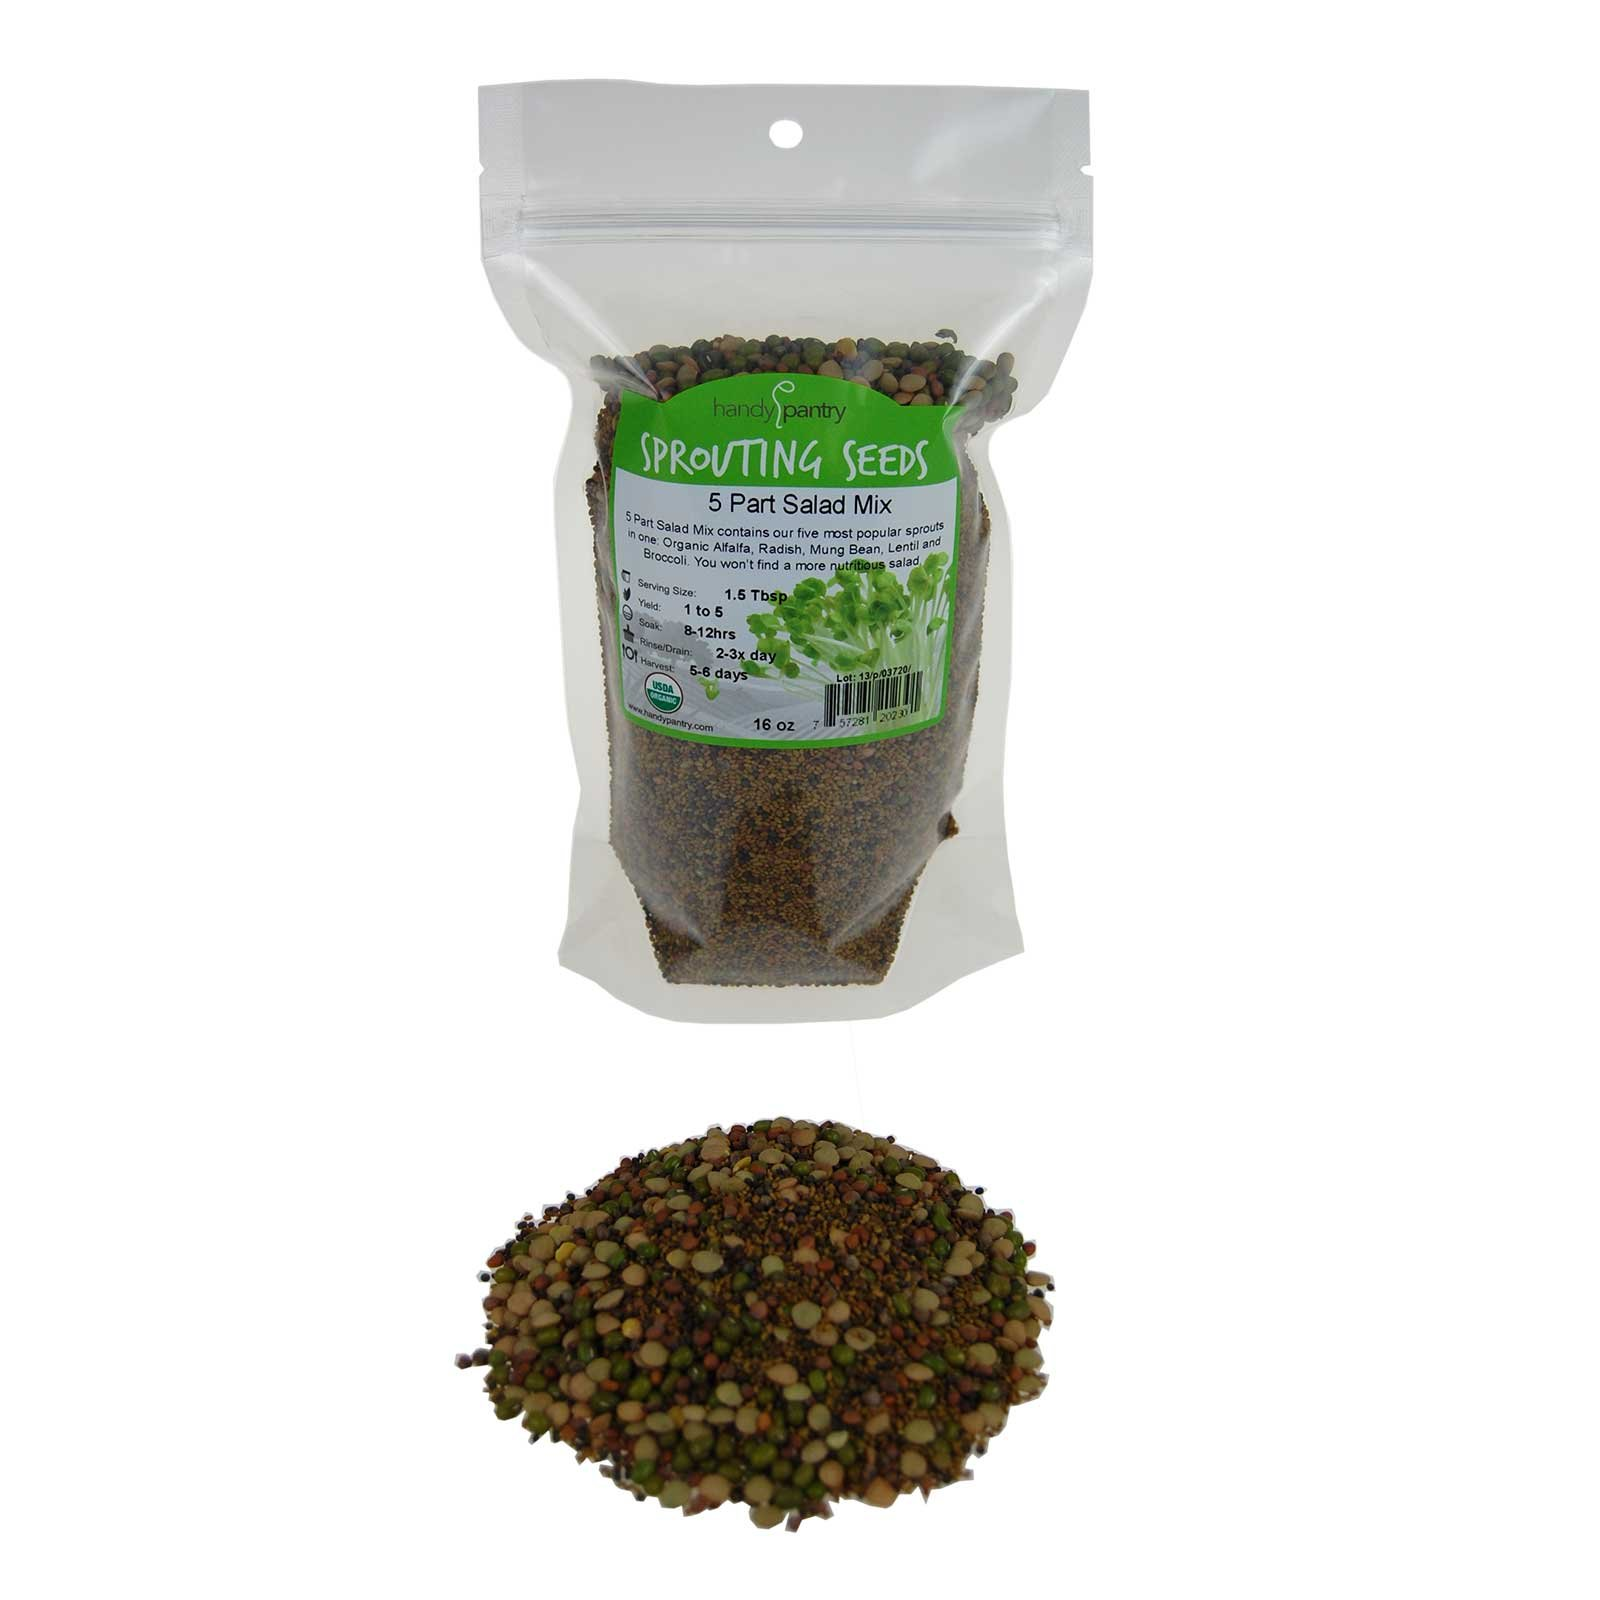 5 Part Salad Sprout Seed Mix -1 Lbs- Organic Sprouting Seeds: Radish, Broccoli, Alfalfa, Green Lentil & Mung Bean - For Sprouts by Handy Pantry